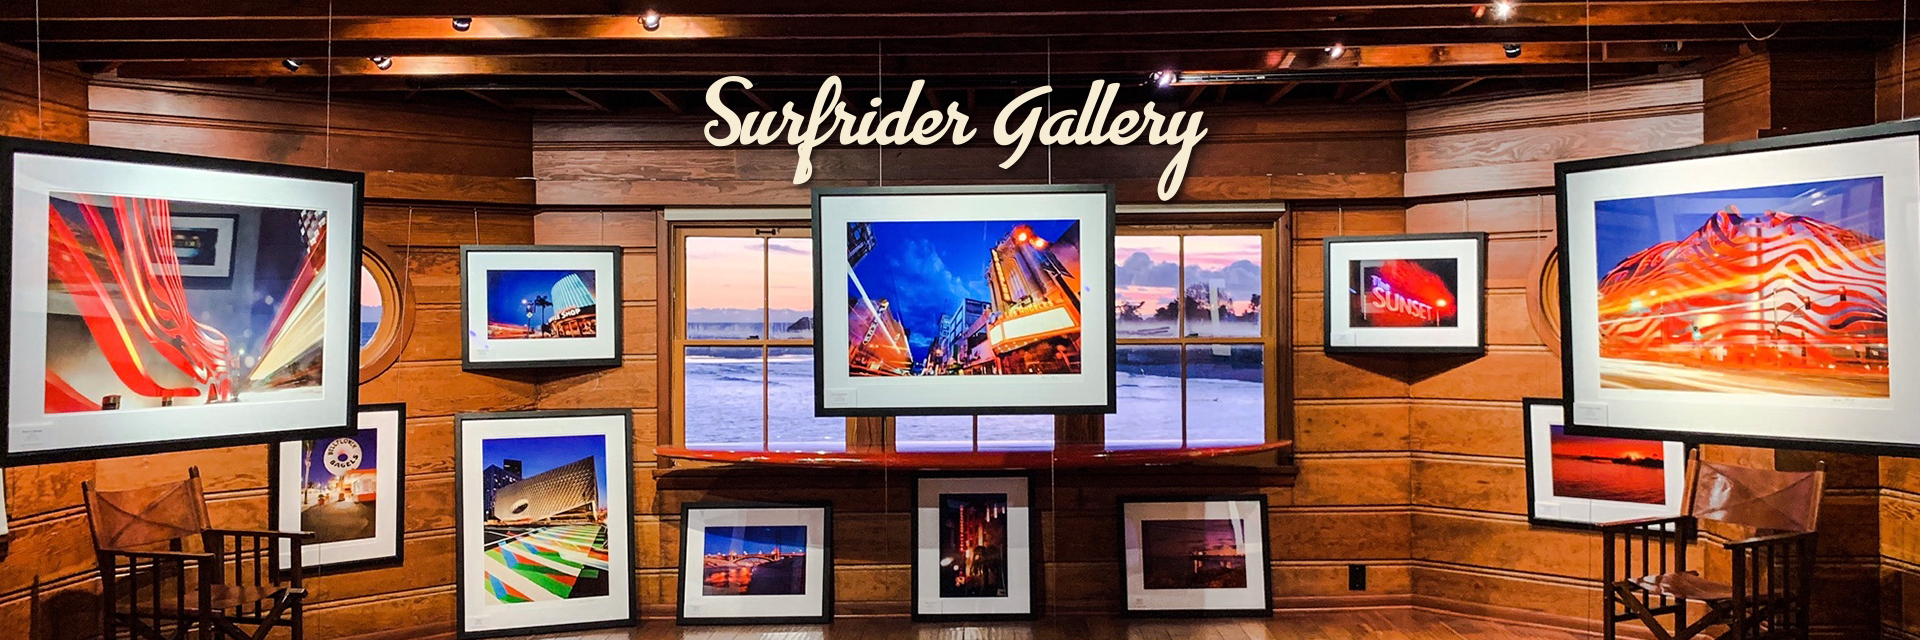 Surfrider Gallery | Multiple images hung on a wall made of wood